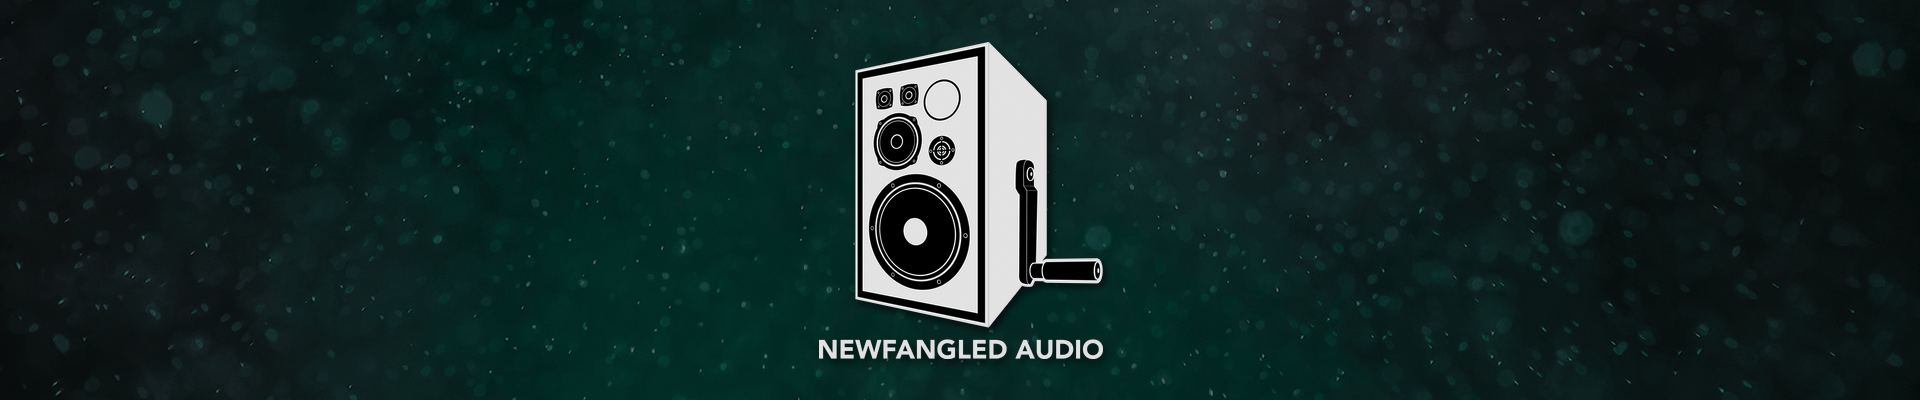 Newfangled Audio